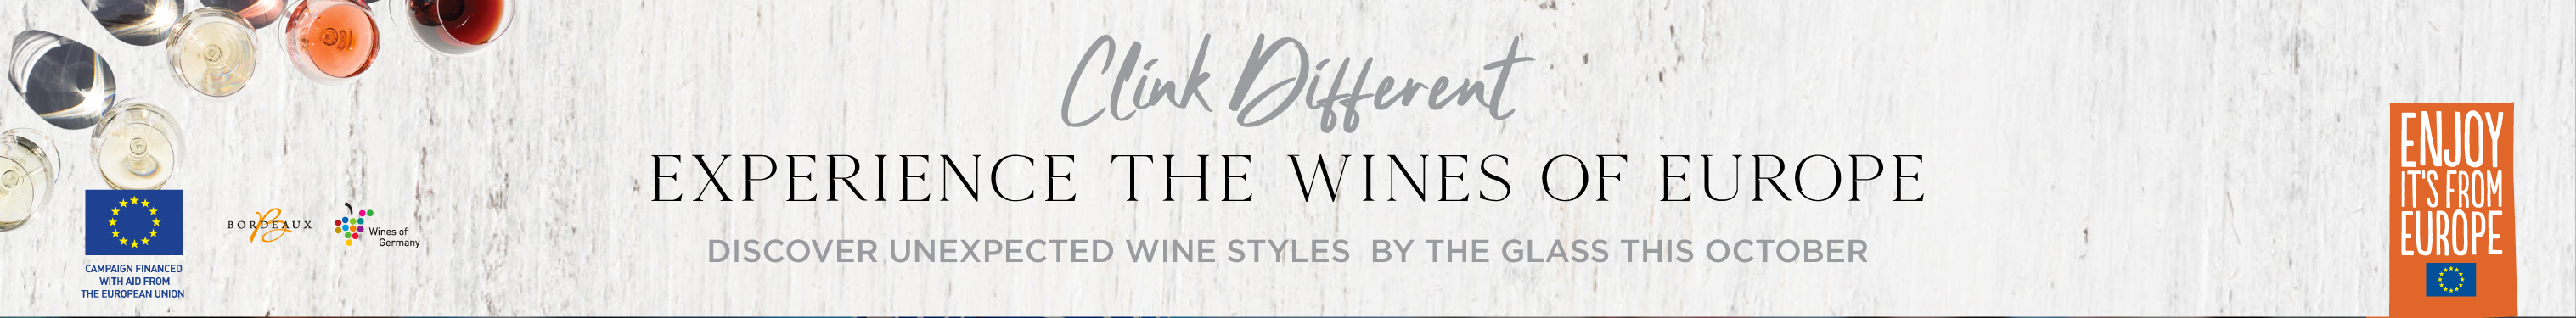 Clink Different - Experience the Wines of Europe